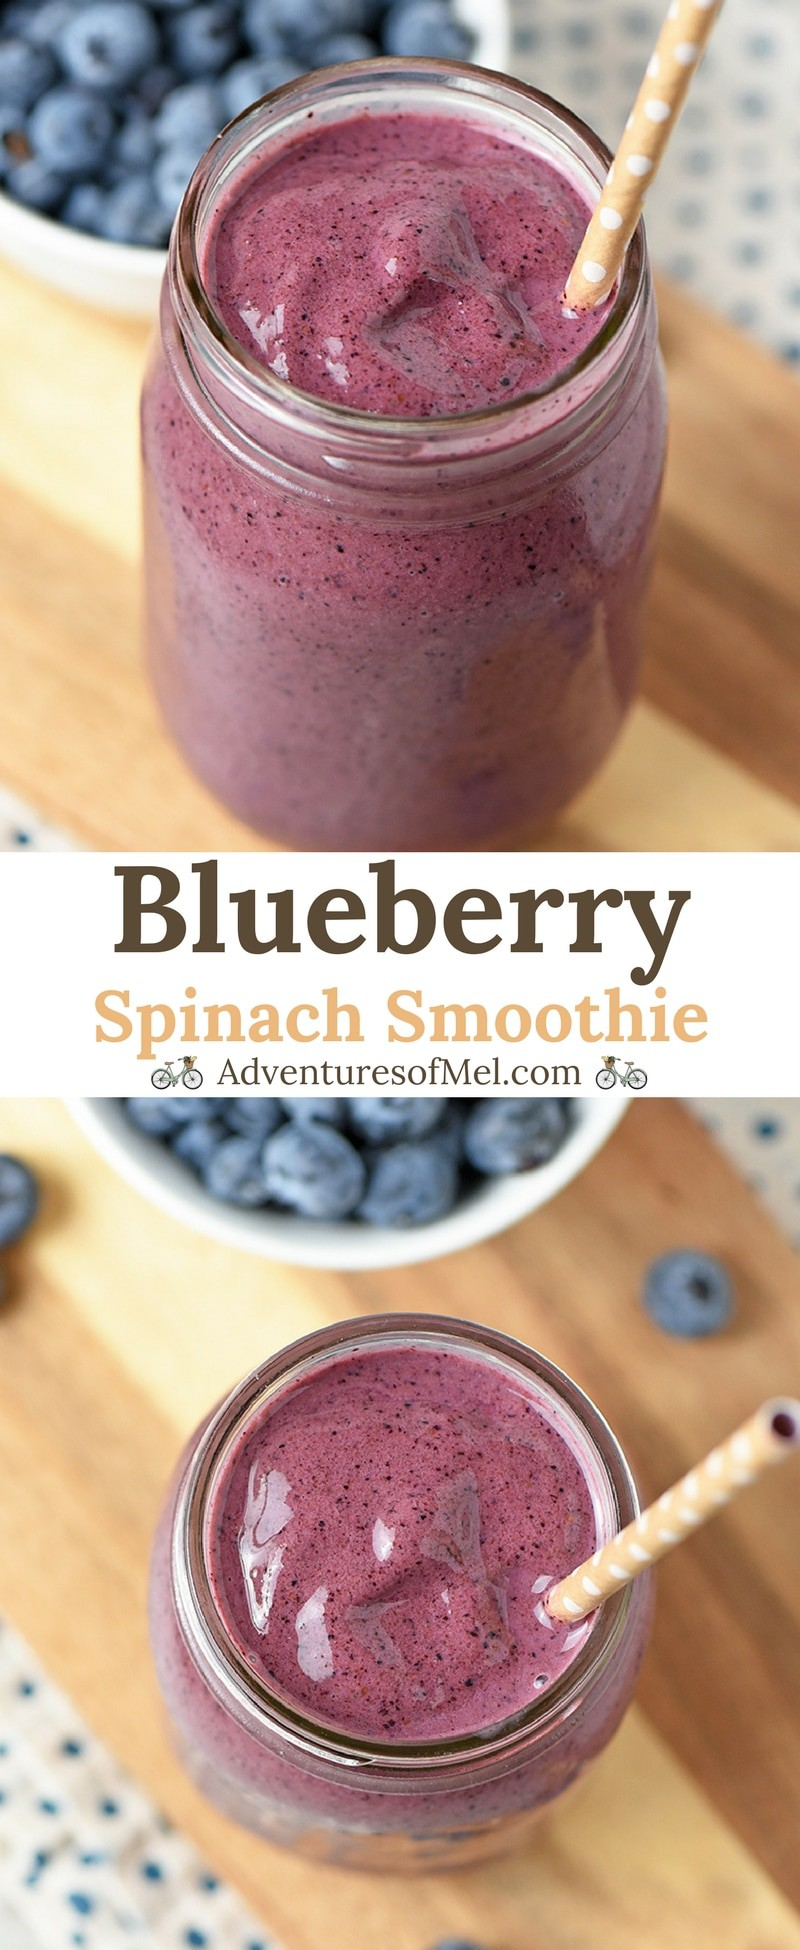 Recipe for Blueberry Spinach Smoothie